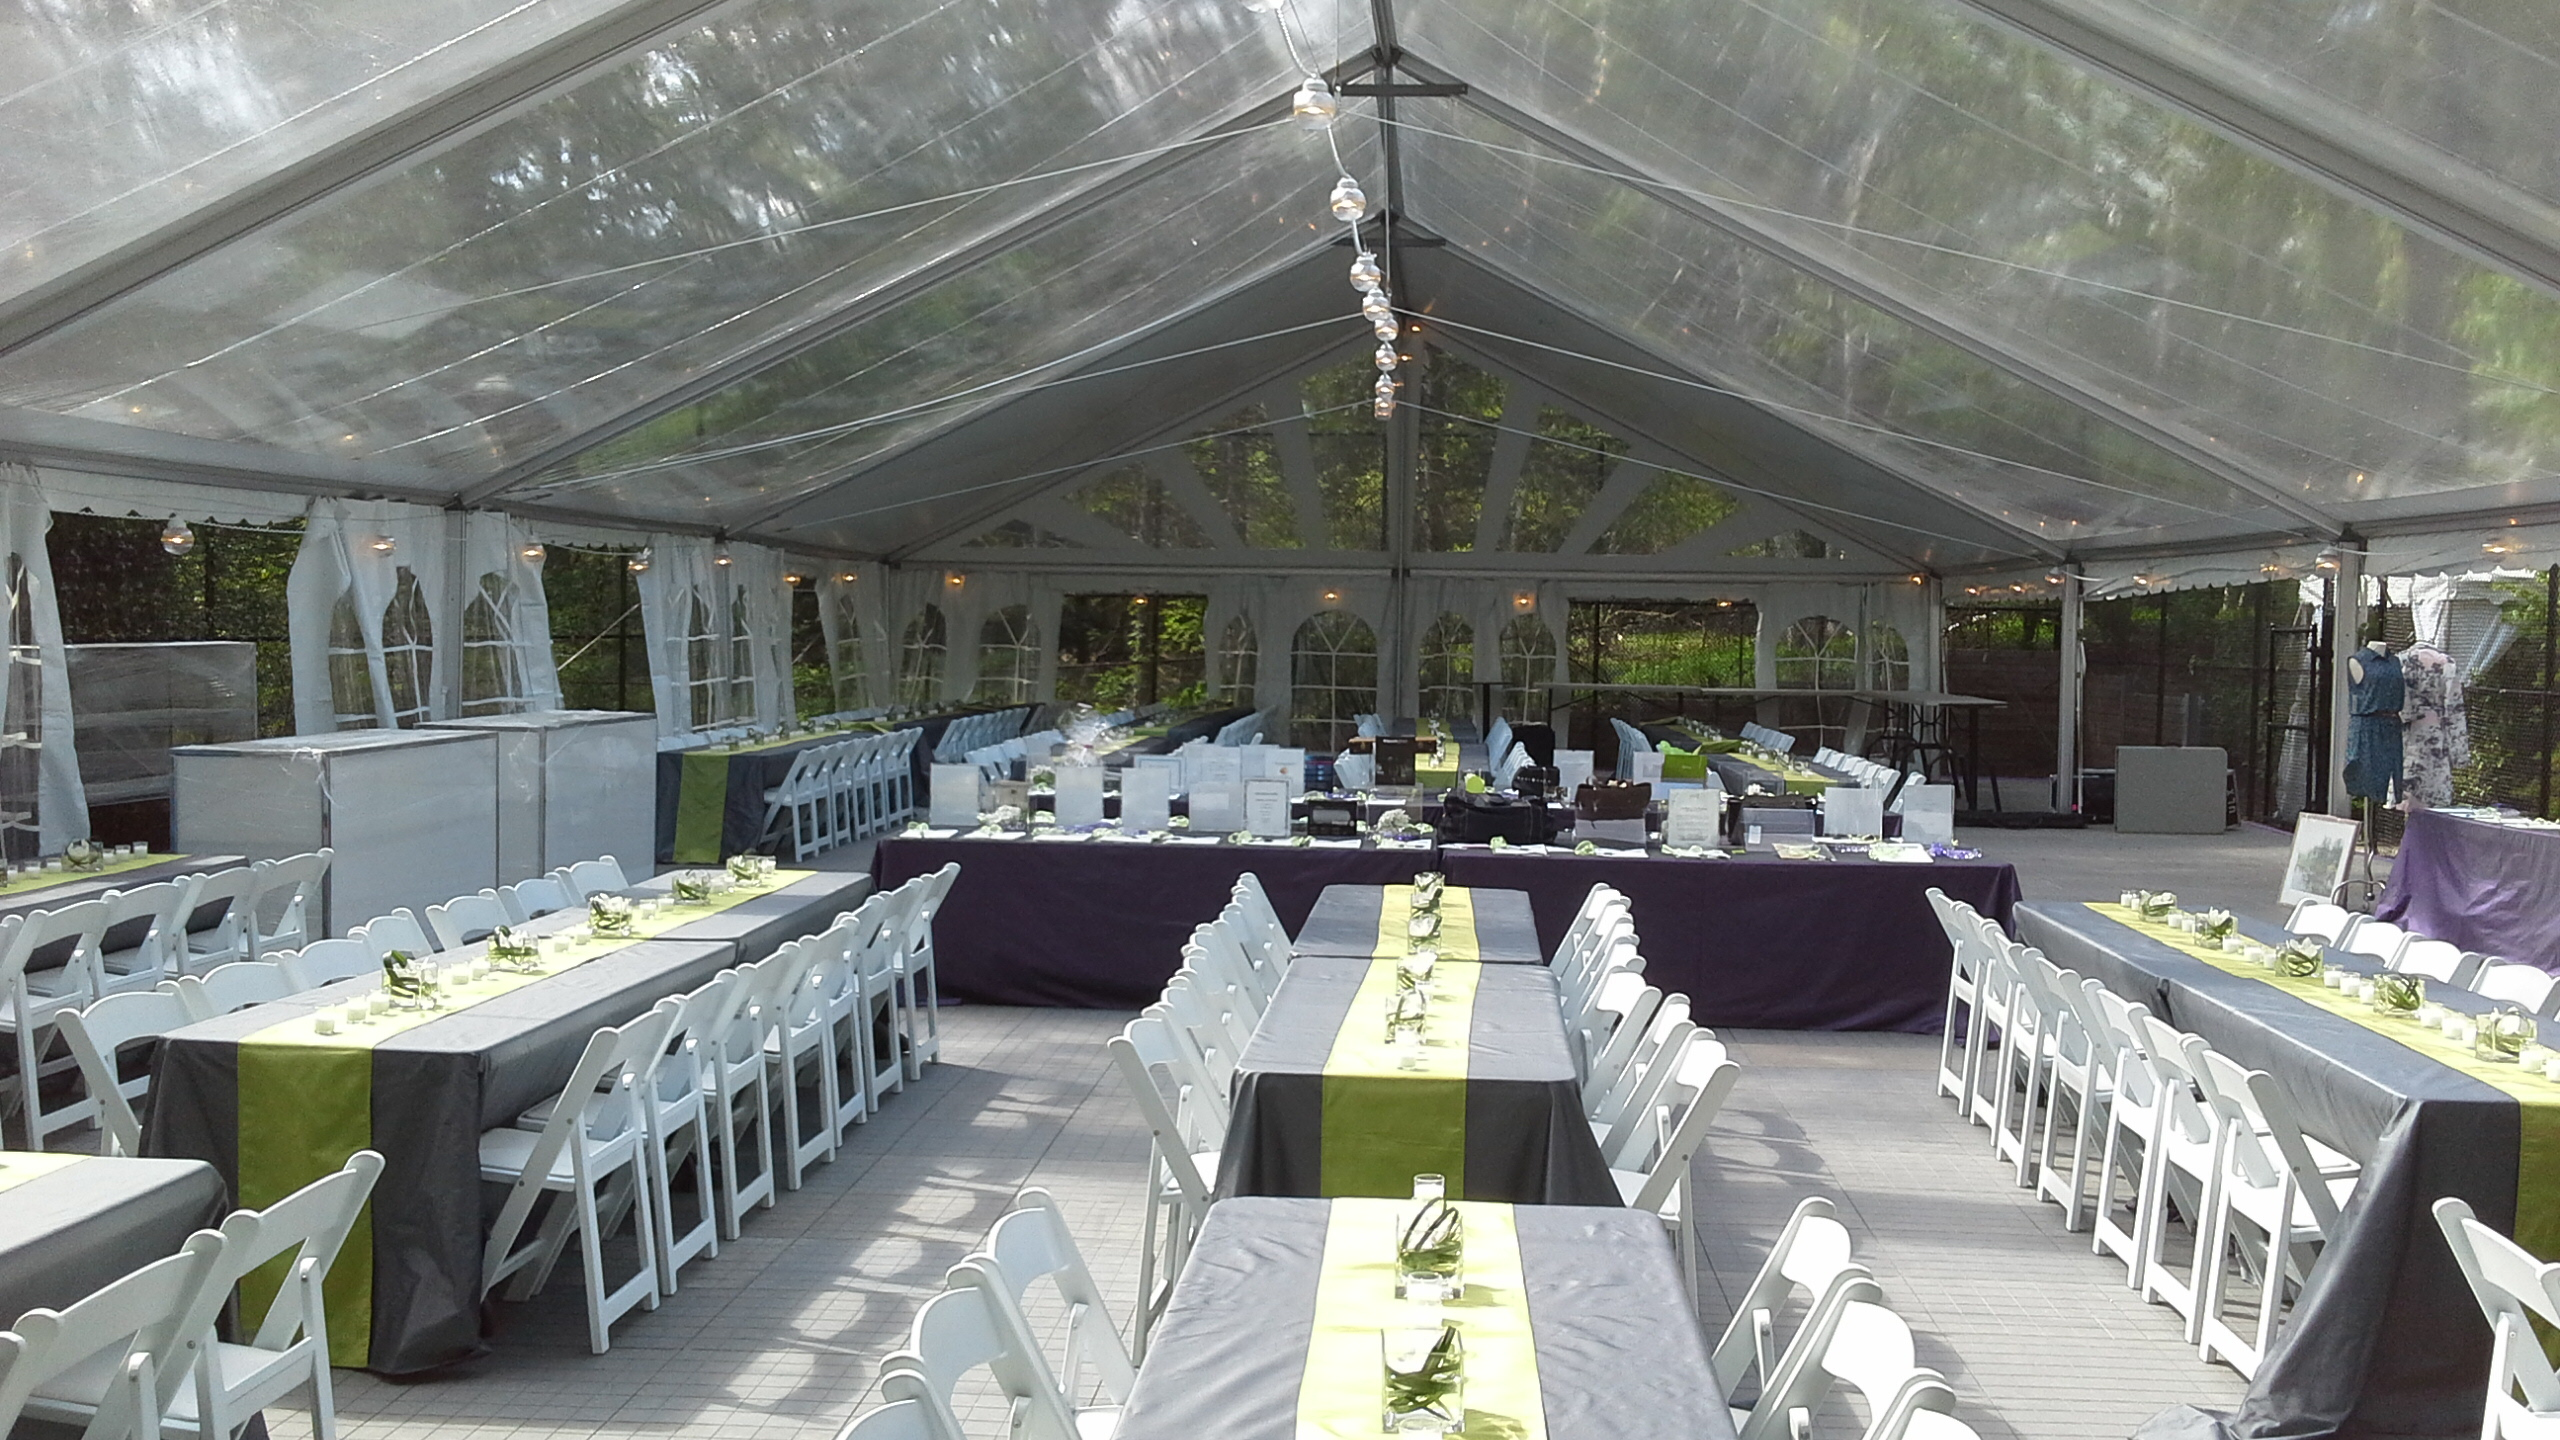 we cater for private parties and corporate events by providing an exclusive range of tents and accessories.